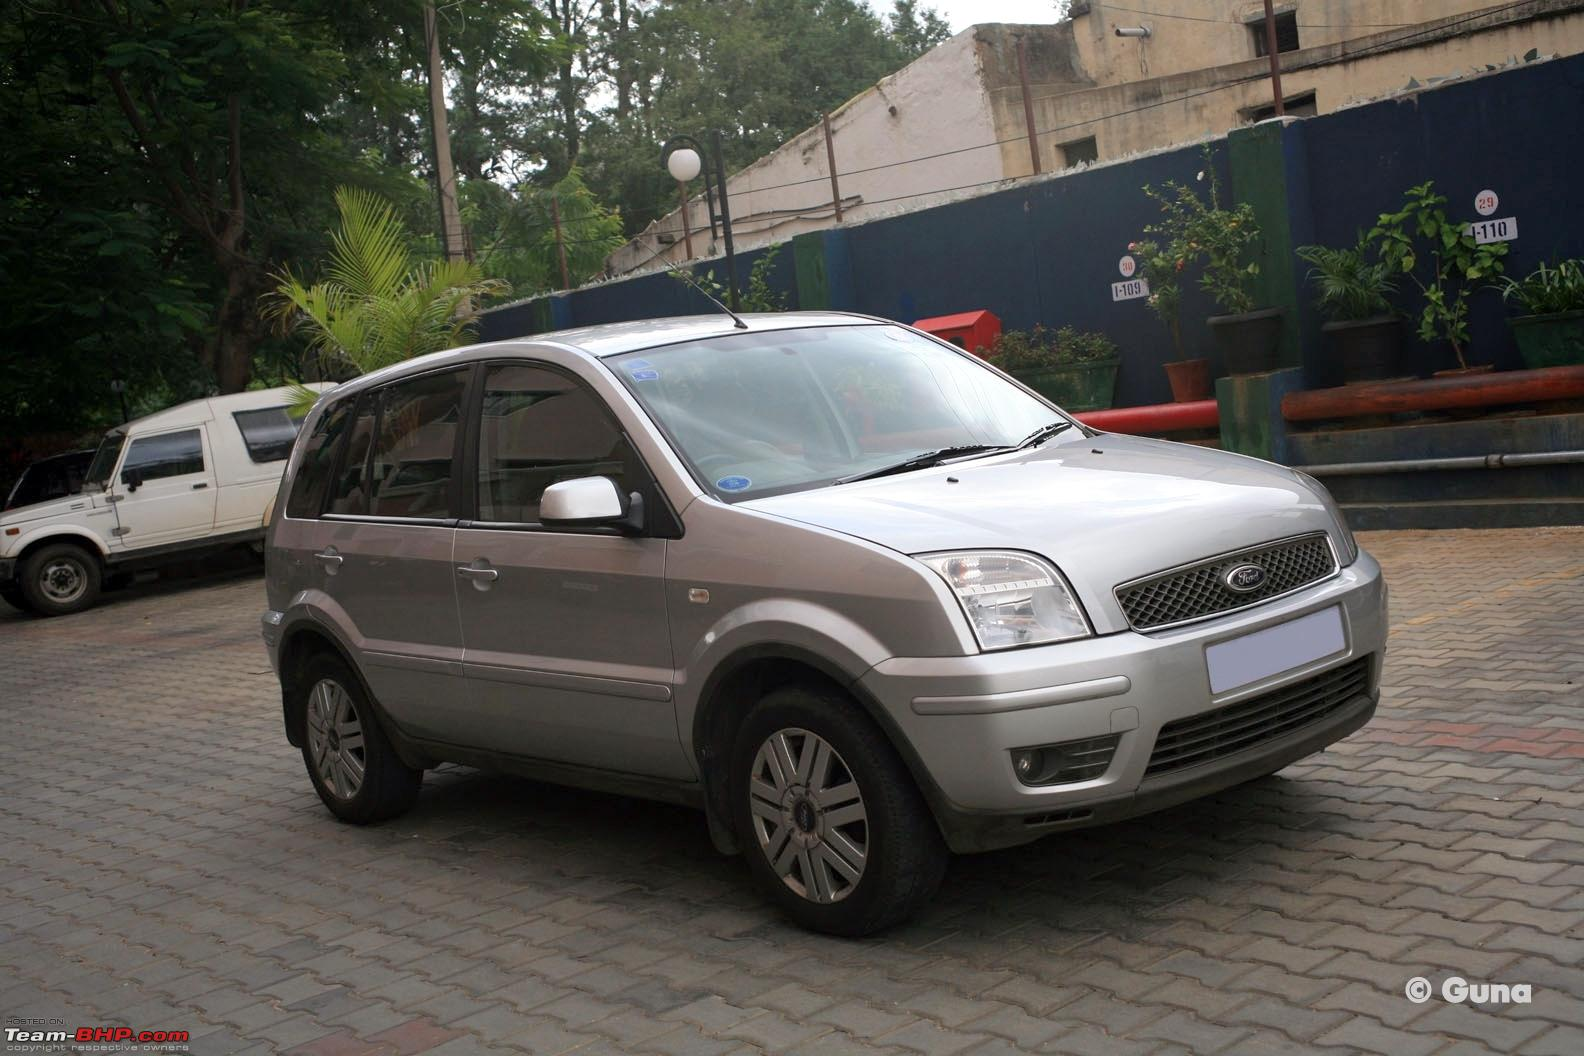 Ownership Report - (Used) Ford Fusion + (Dec 2005, 42,500 km)